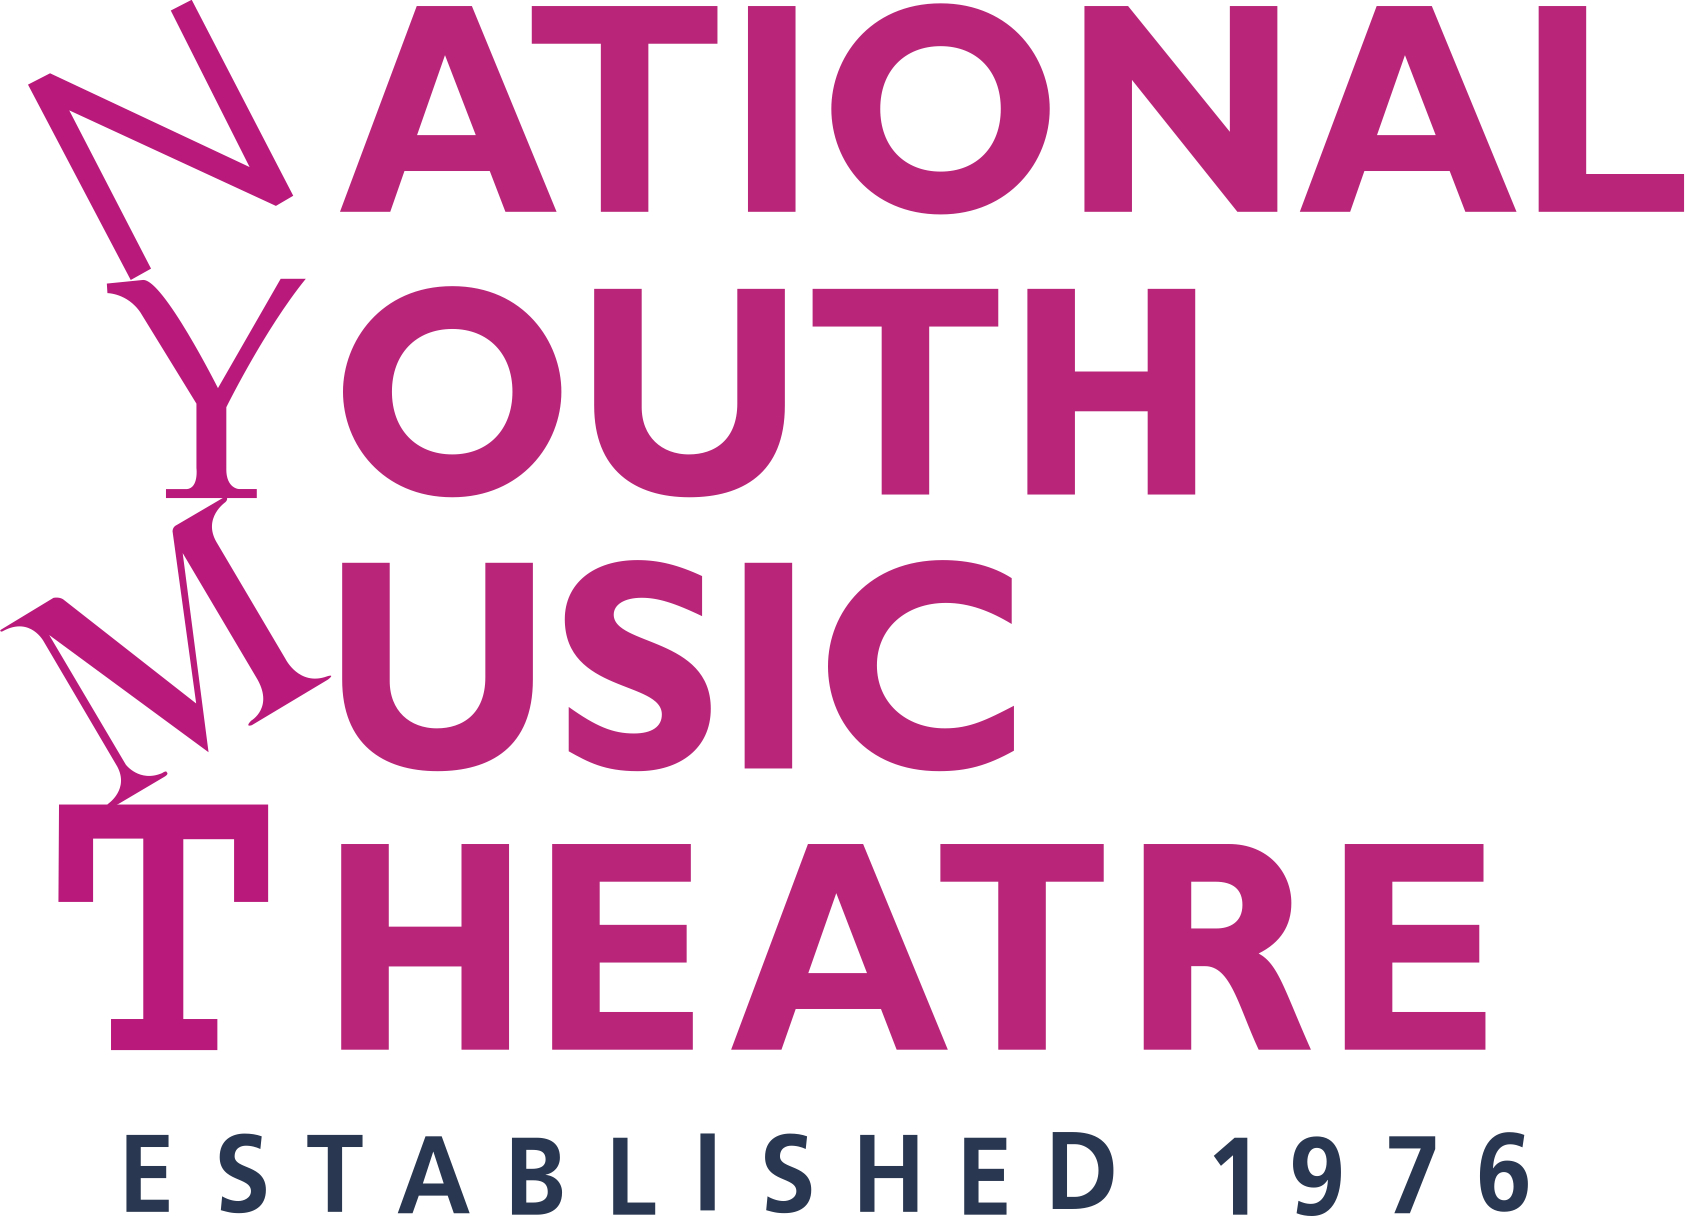 filenational youth musical theatre logojpg wikipedia